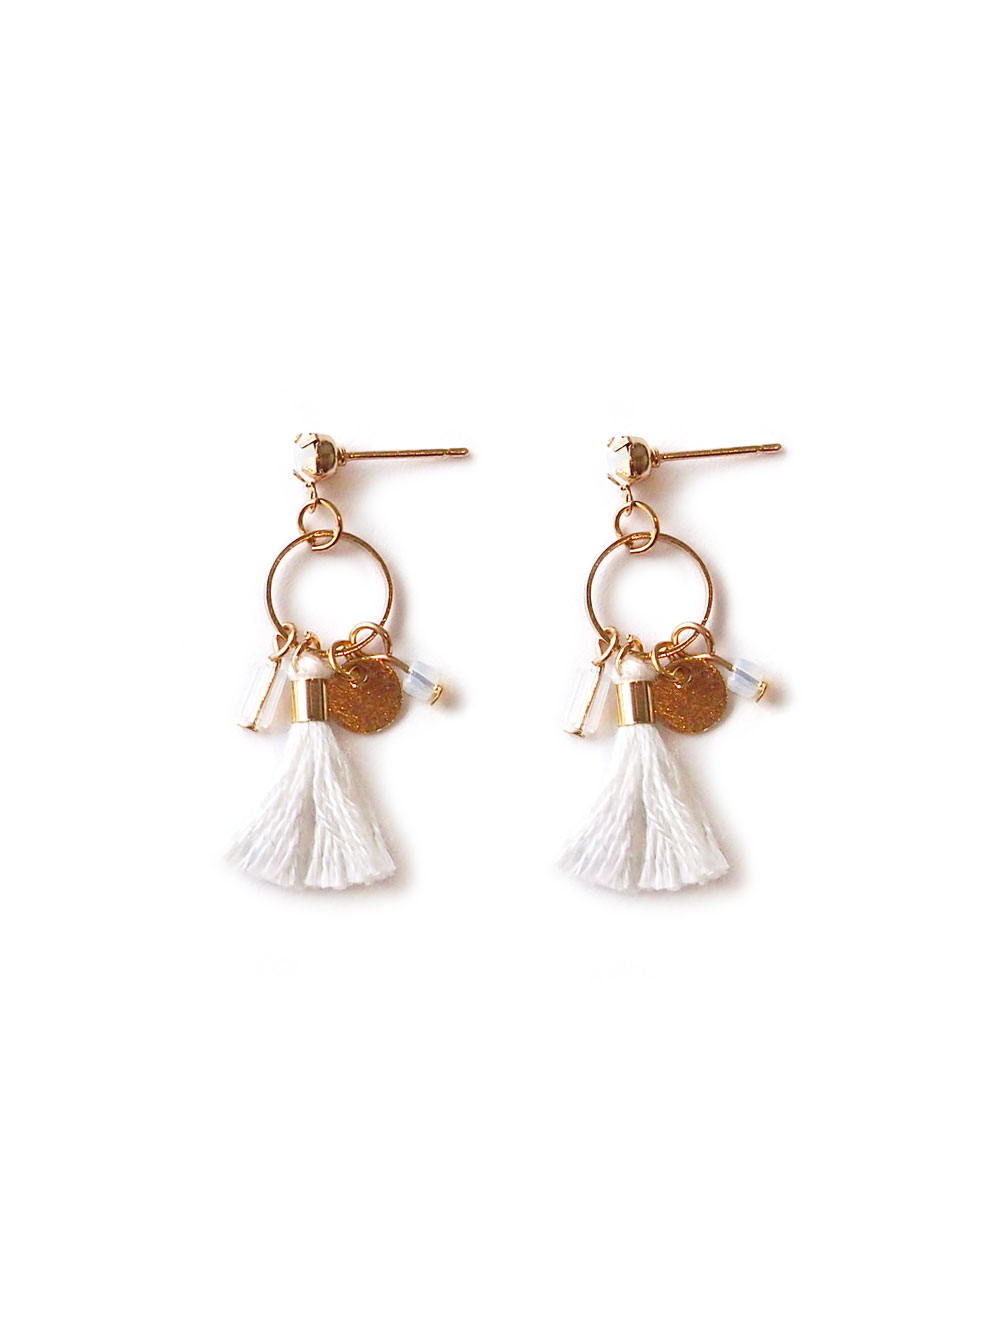 d027b8dad Back in Stock) Tiny Crystal Tassel Earrings in White | Arva.co